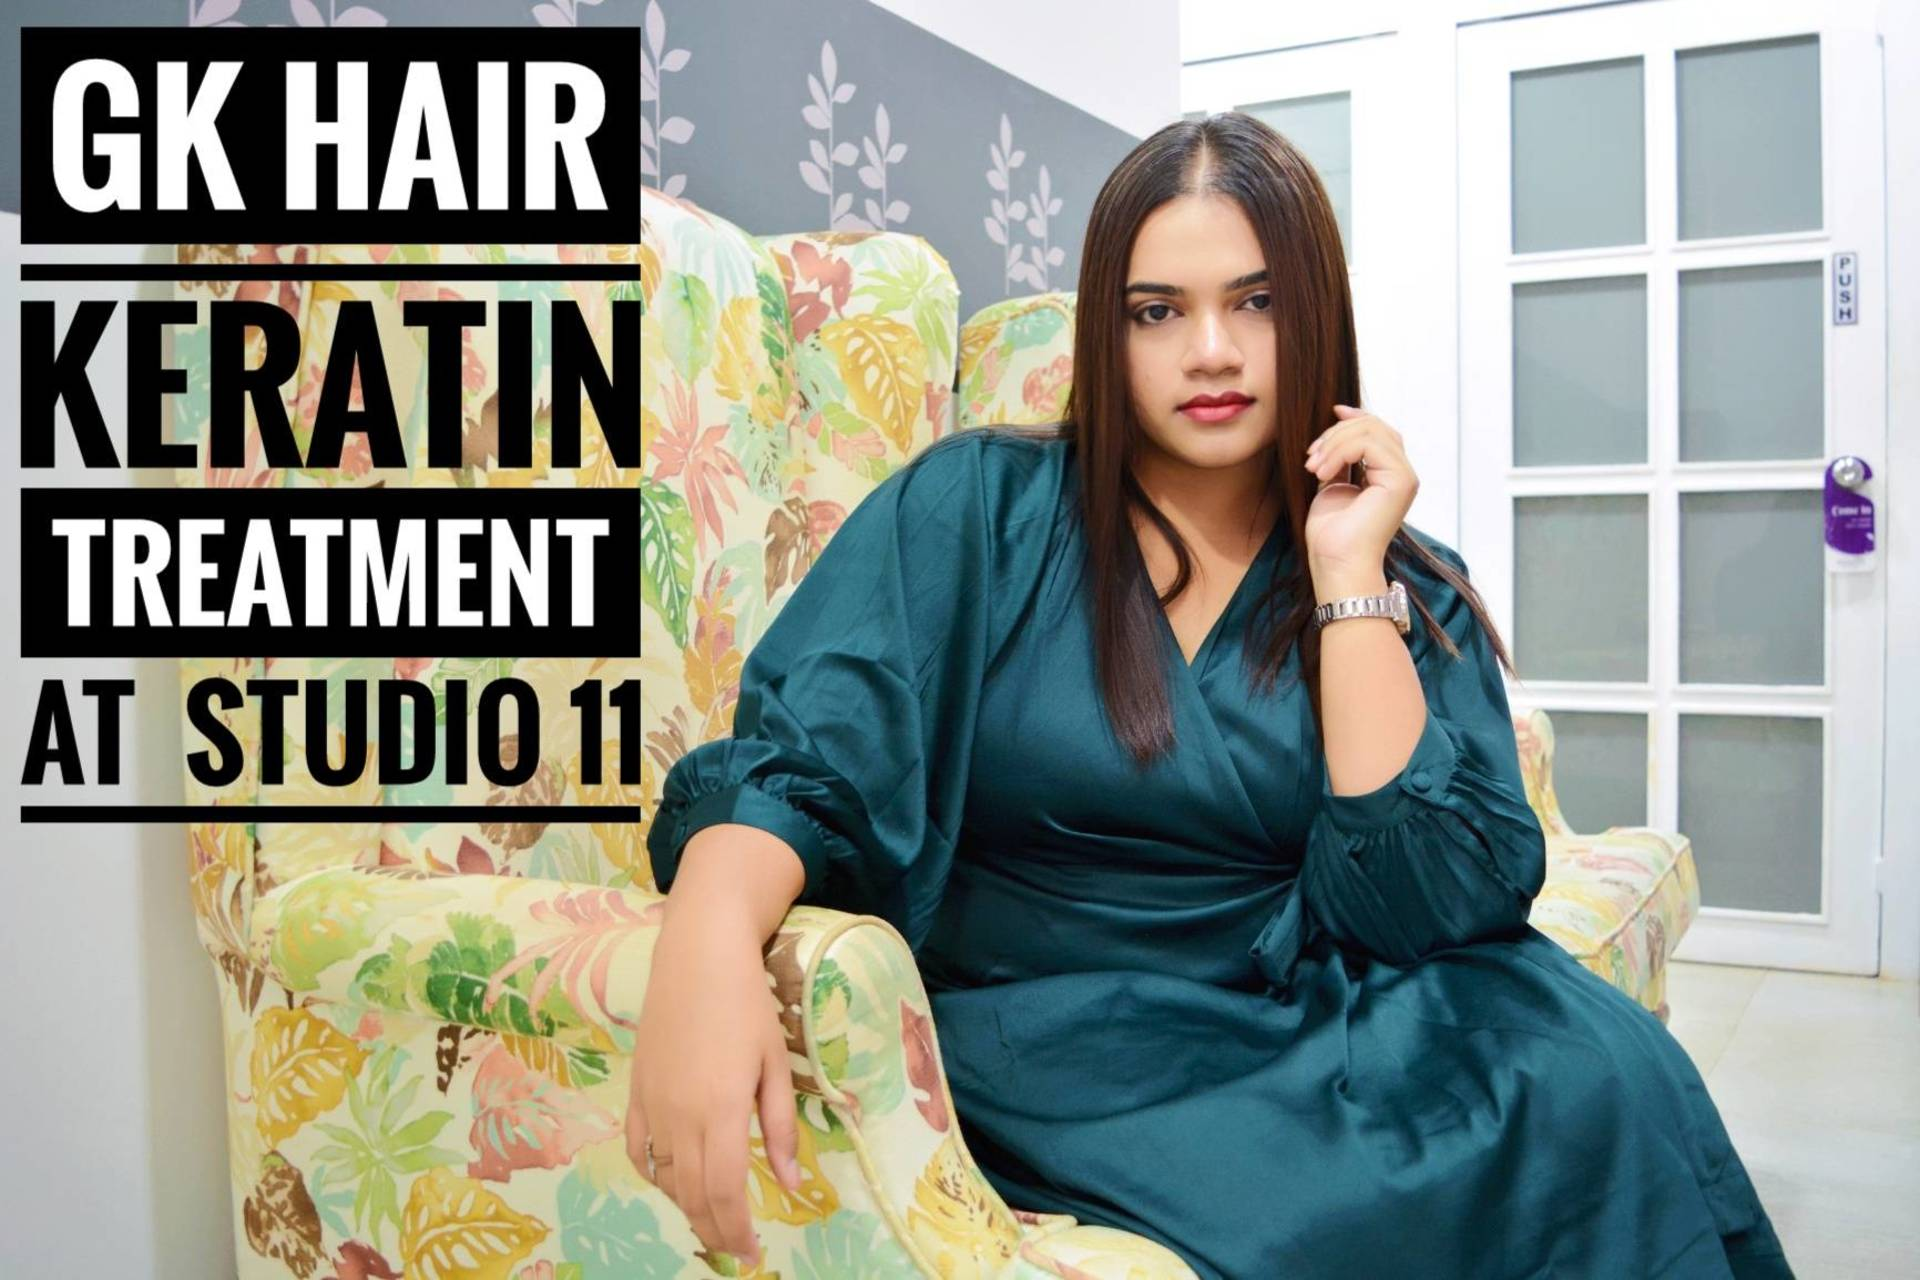 GK Hair Keratin Treatment Experience  image